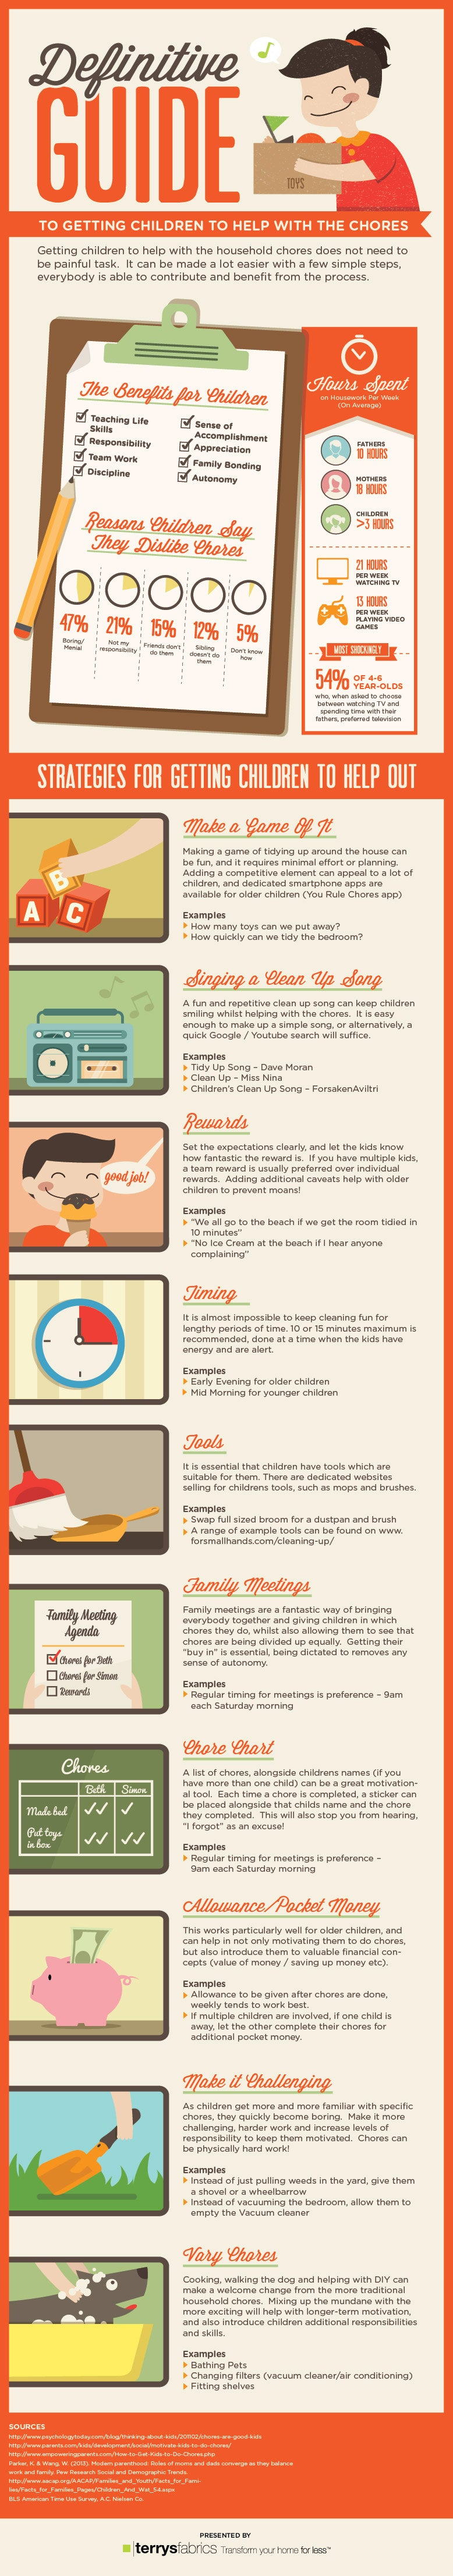 Getting Children To Help With Chores Infographic